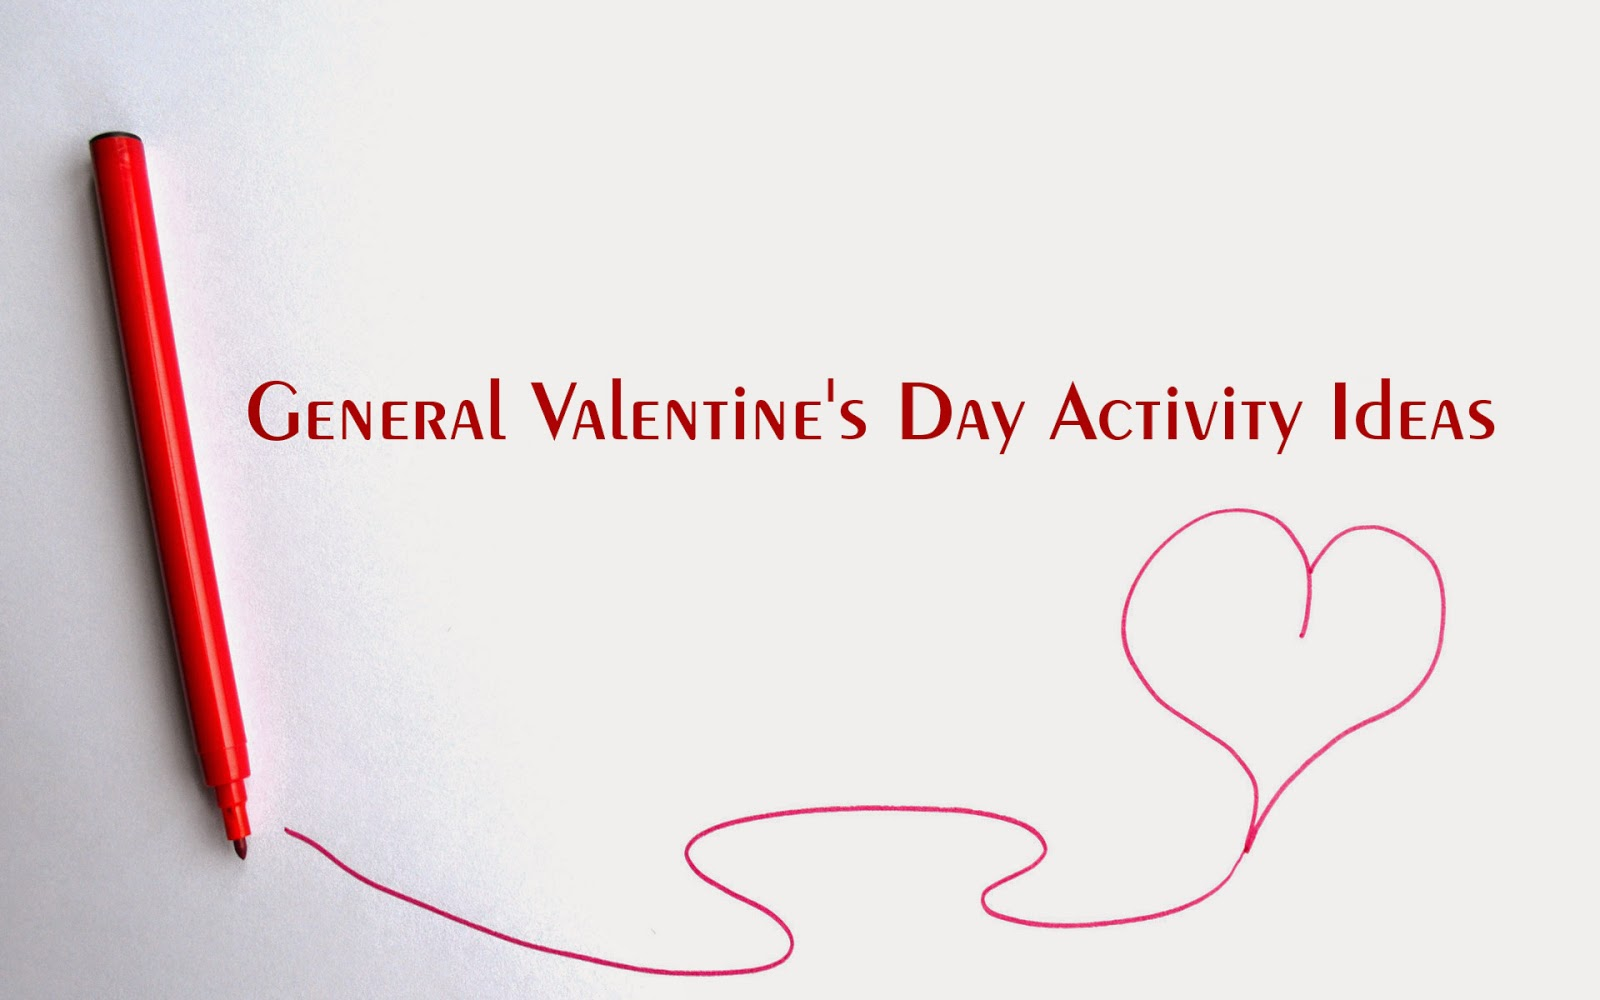 General Valentine's Day Activity Ideas